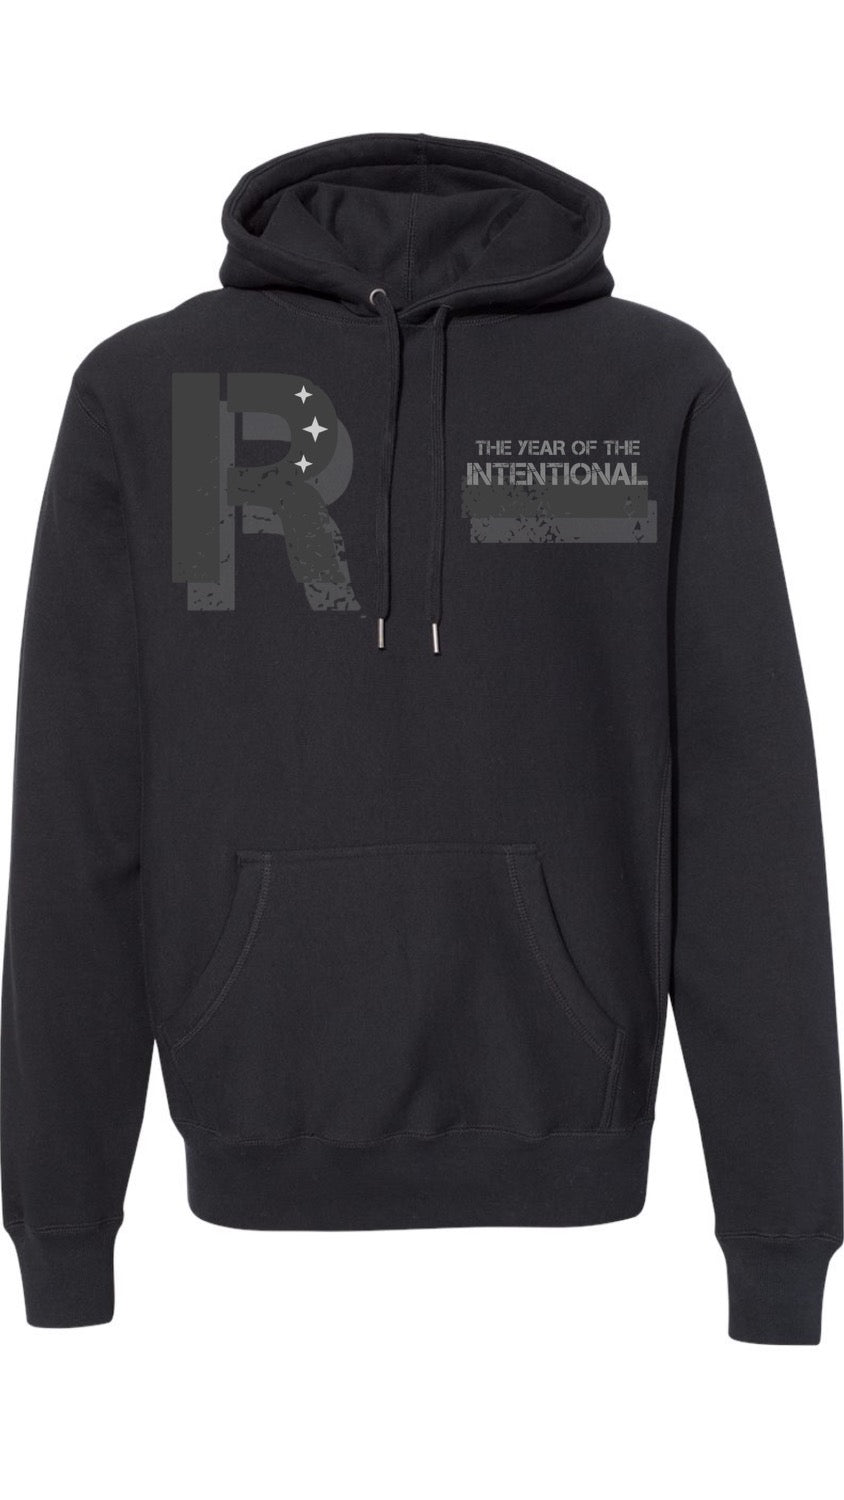 Relentless Church Intentional Hoodie